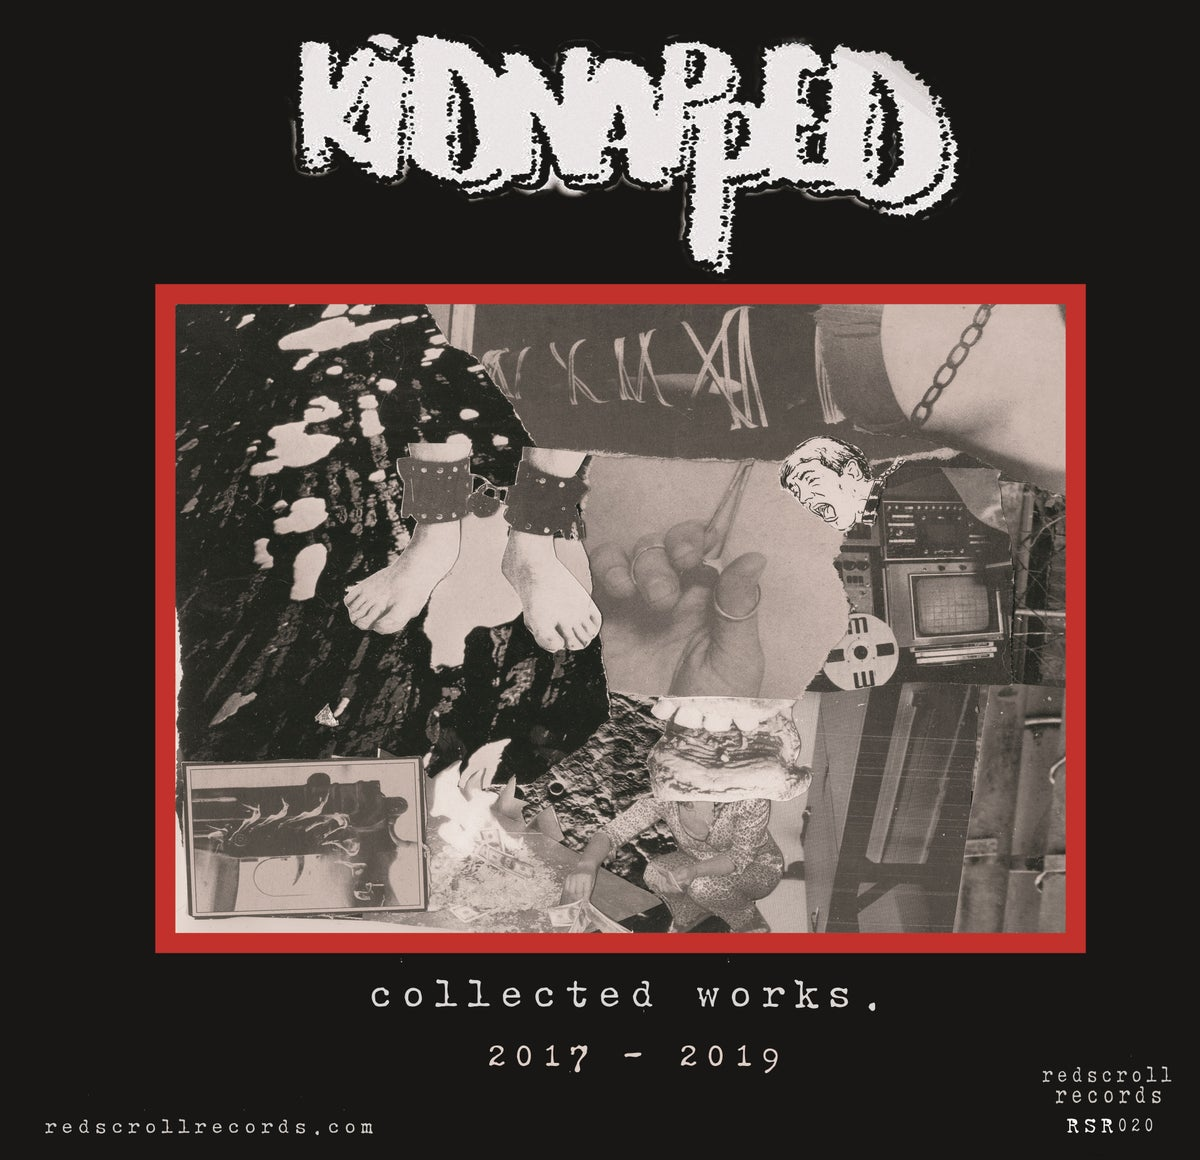 Image of [RSR 020] Kidnapped - Collected Works 2017-2019 LP